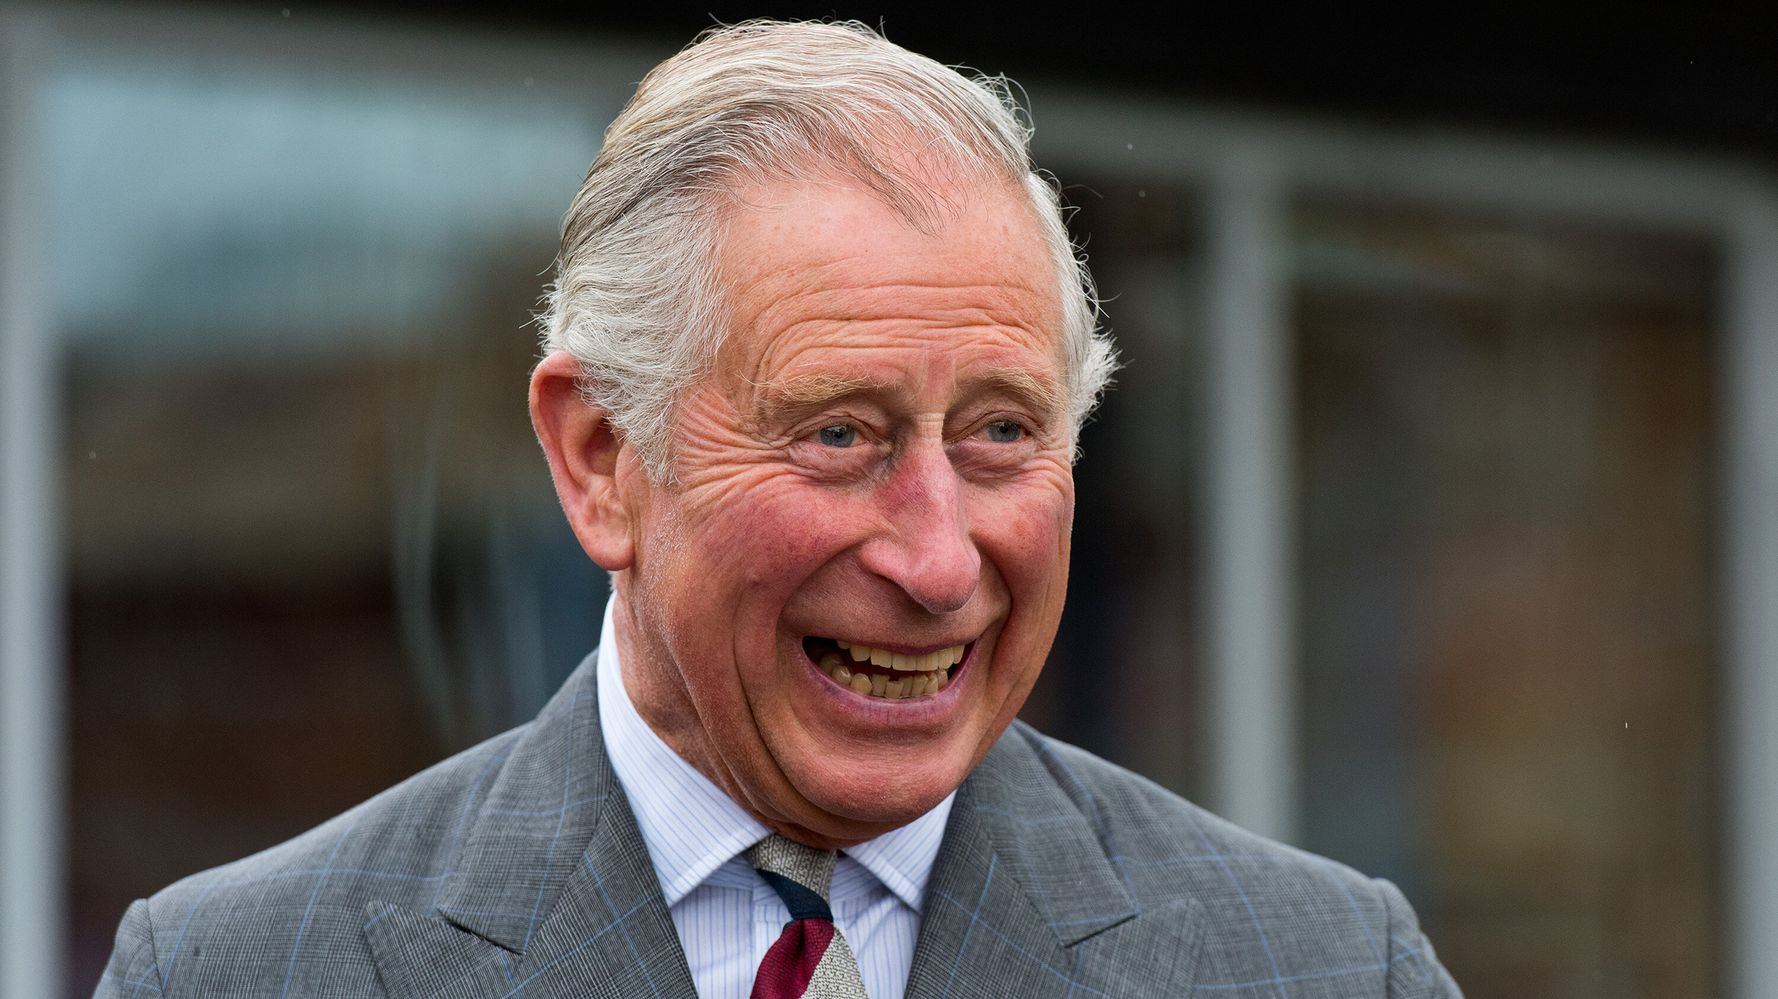 Prince Charles Opens Up About His Fashion Choices For British Vogue